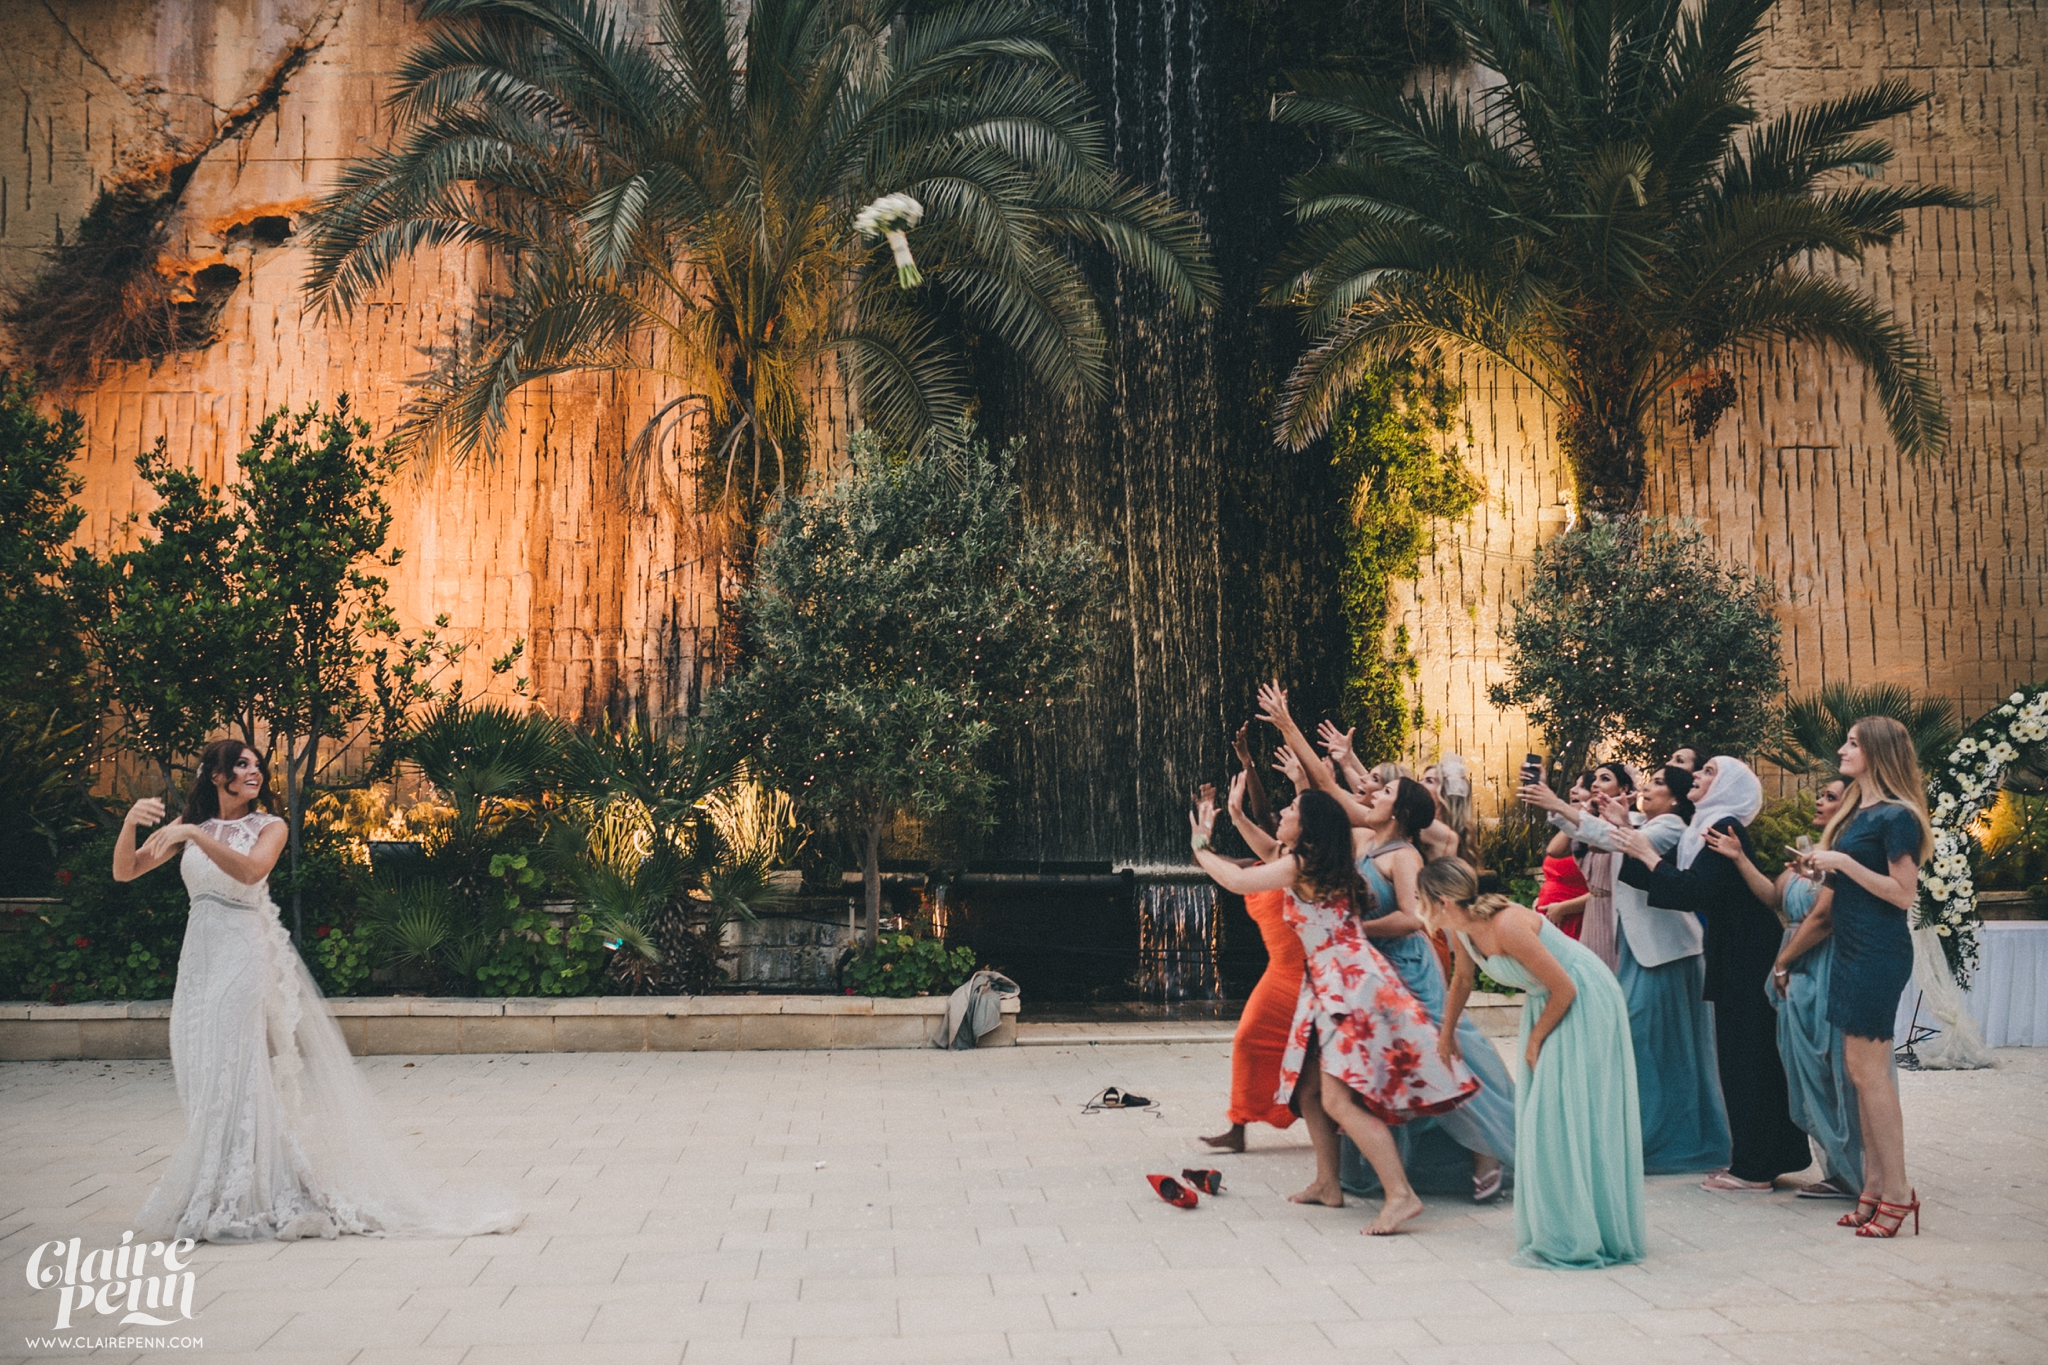 Destination wedding Malta waterfall gardens Jade BINTM BNTM 00021.jpg